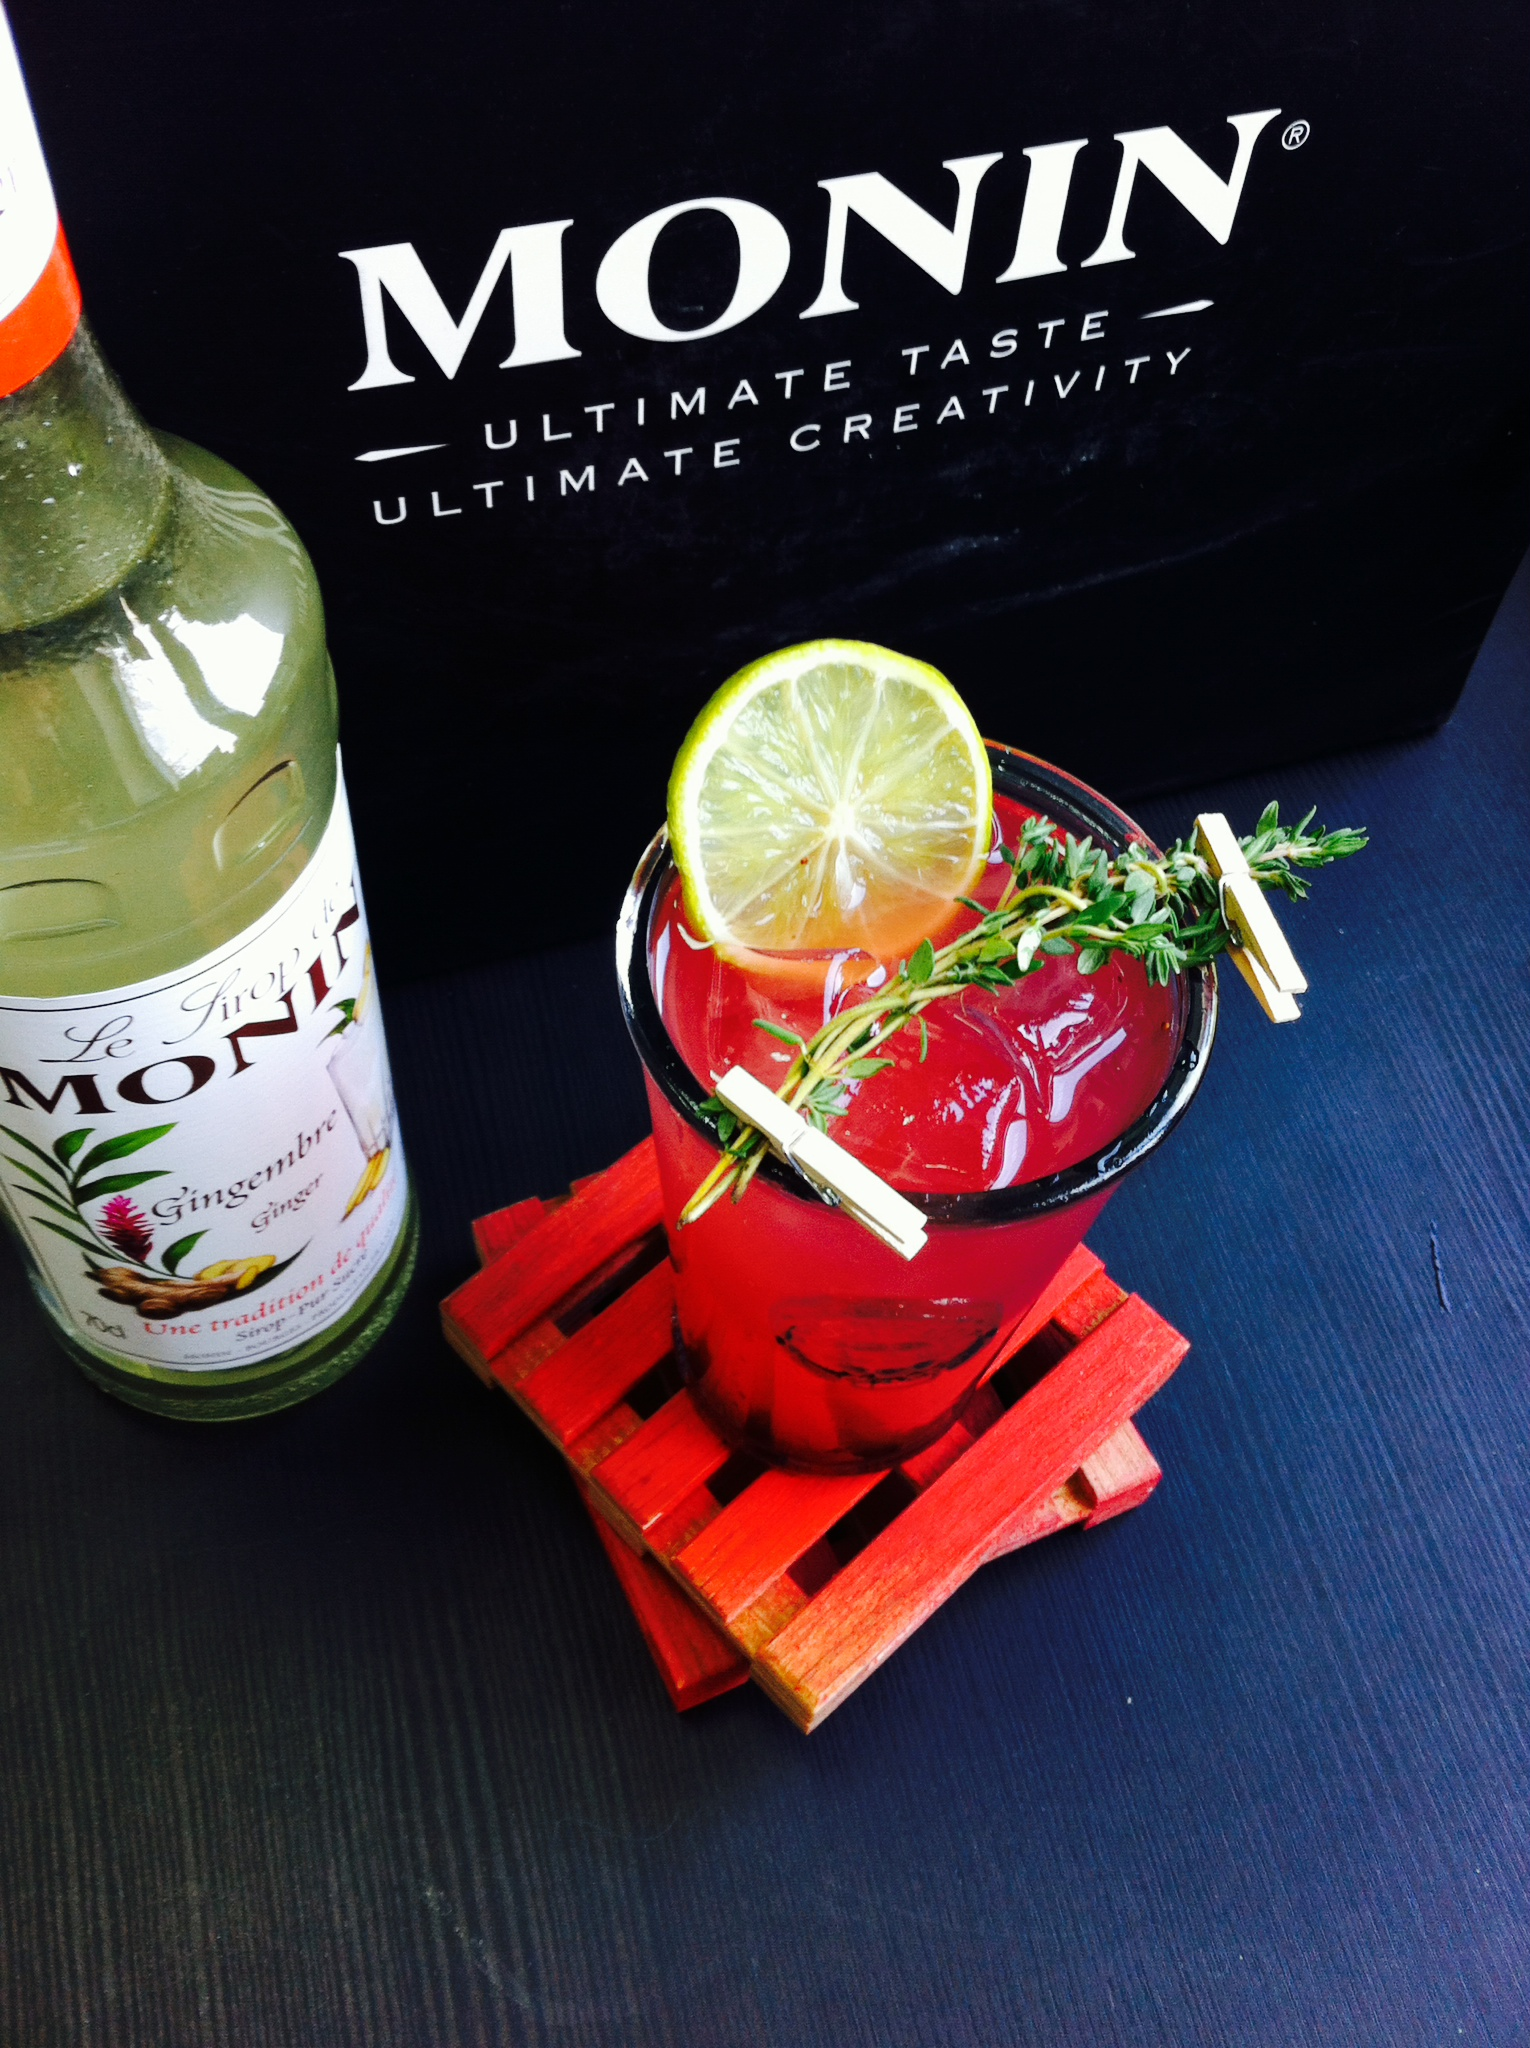 limonade monin